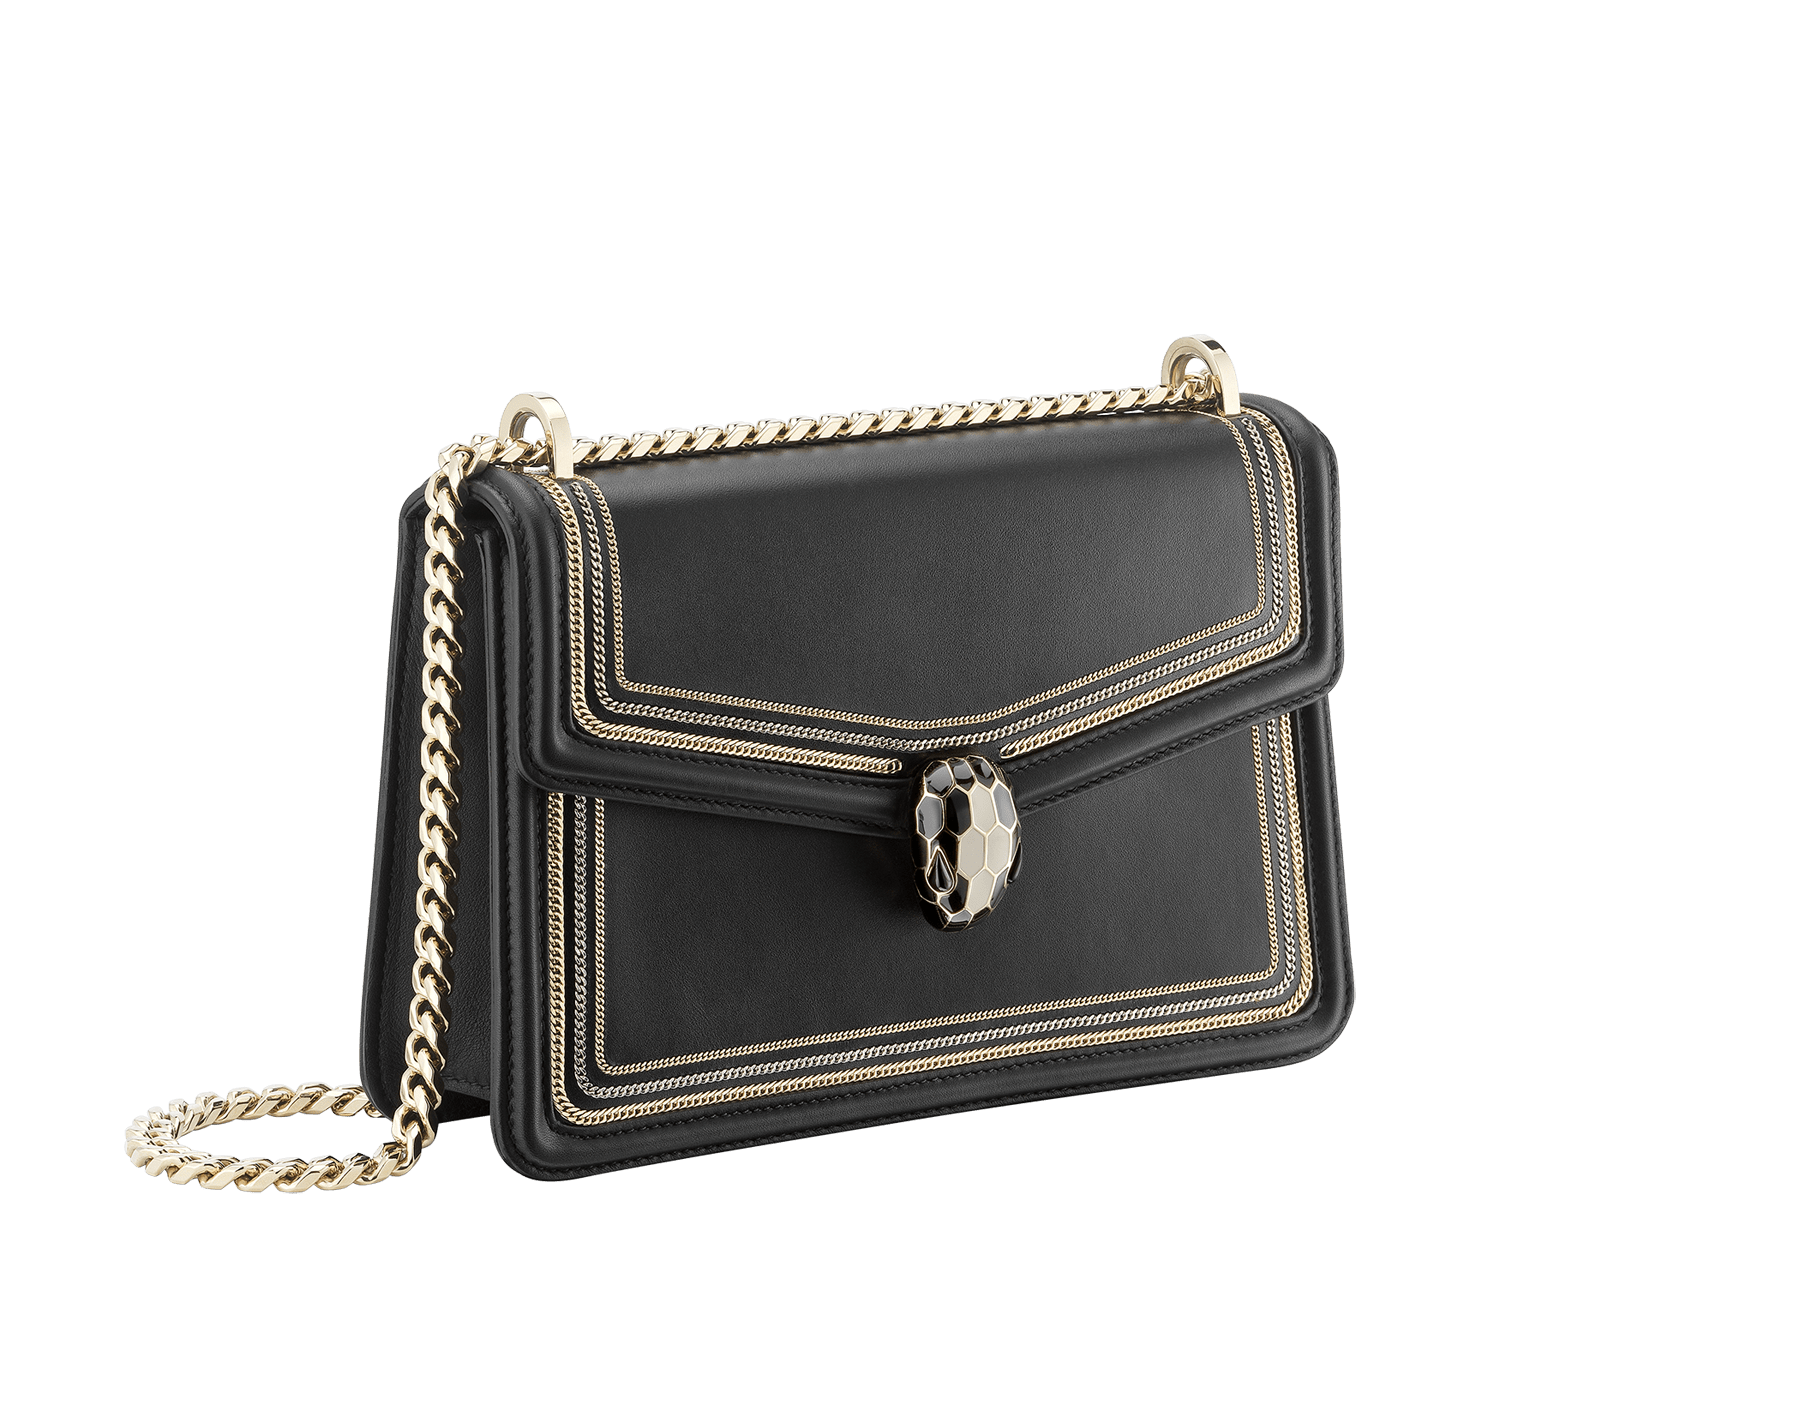 """Serpenti Diamond Blast"" shoulder bag in black smooth calf leather, featuring a 3-Chain motif in light gold and palladium finishing. Iconic snakehead closure in light gold plated brass enriched with black and white enamel and black onyx eyes 922-3CFCL image 2"